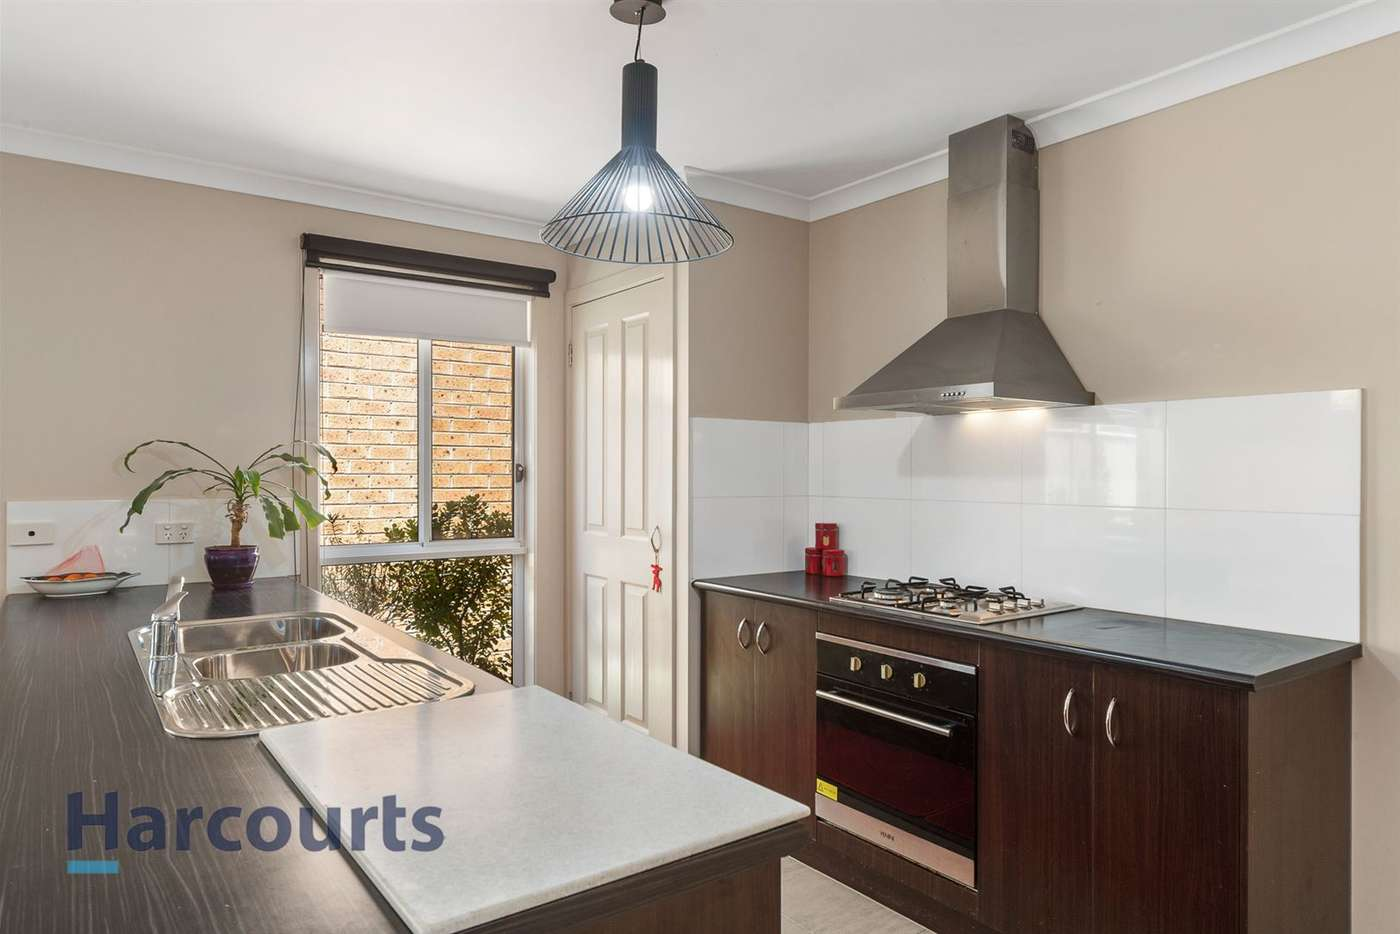 Sixth view of Homely house listing, 6 Wattlewoods Place, Carrum Downs VIC 3201